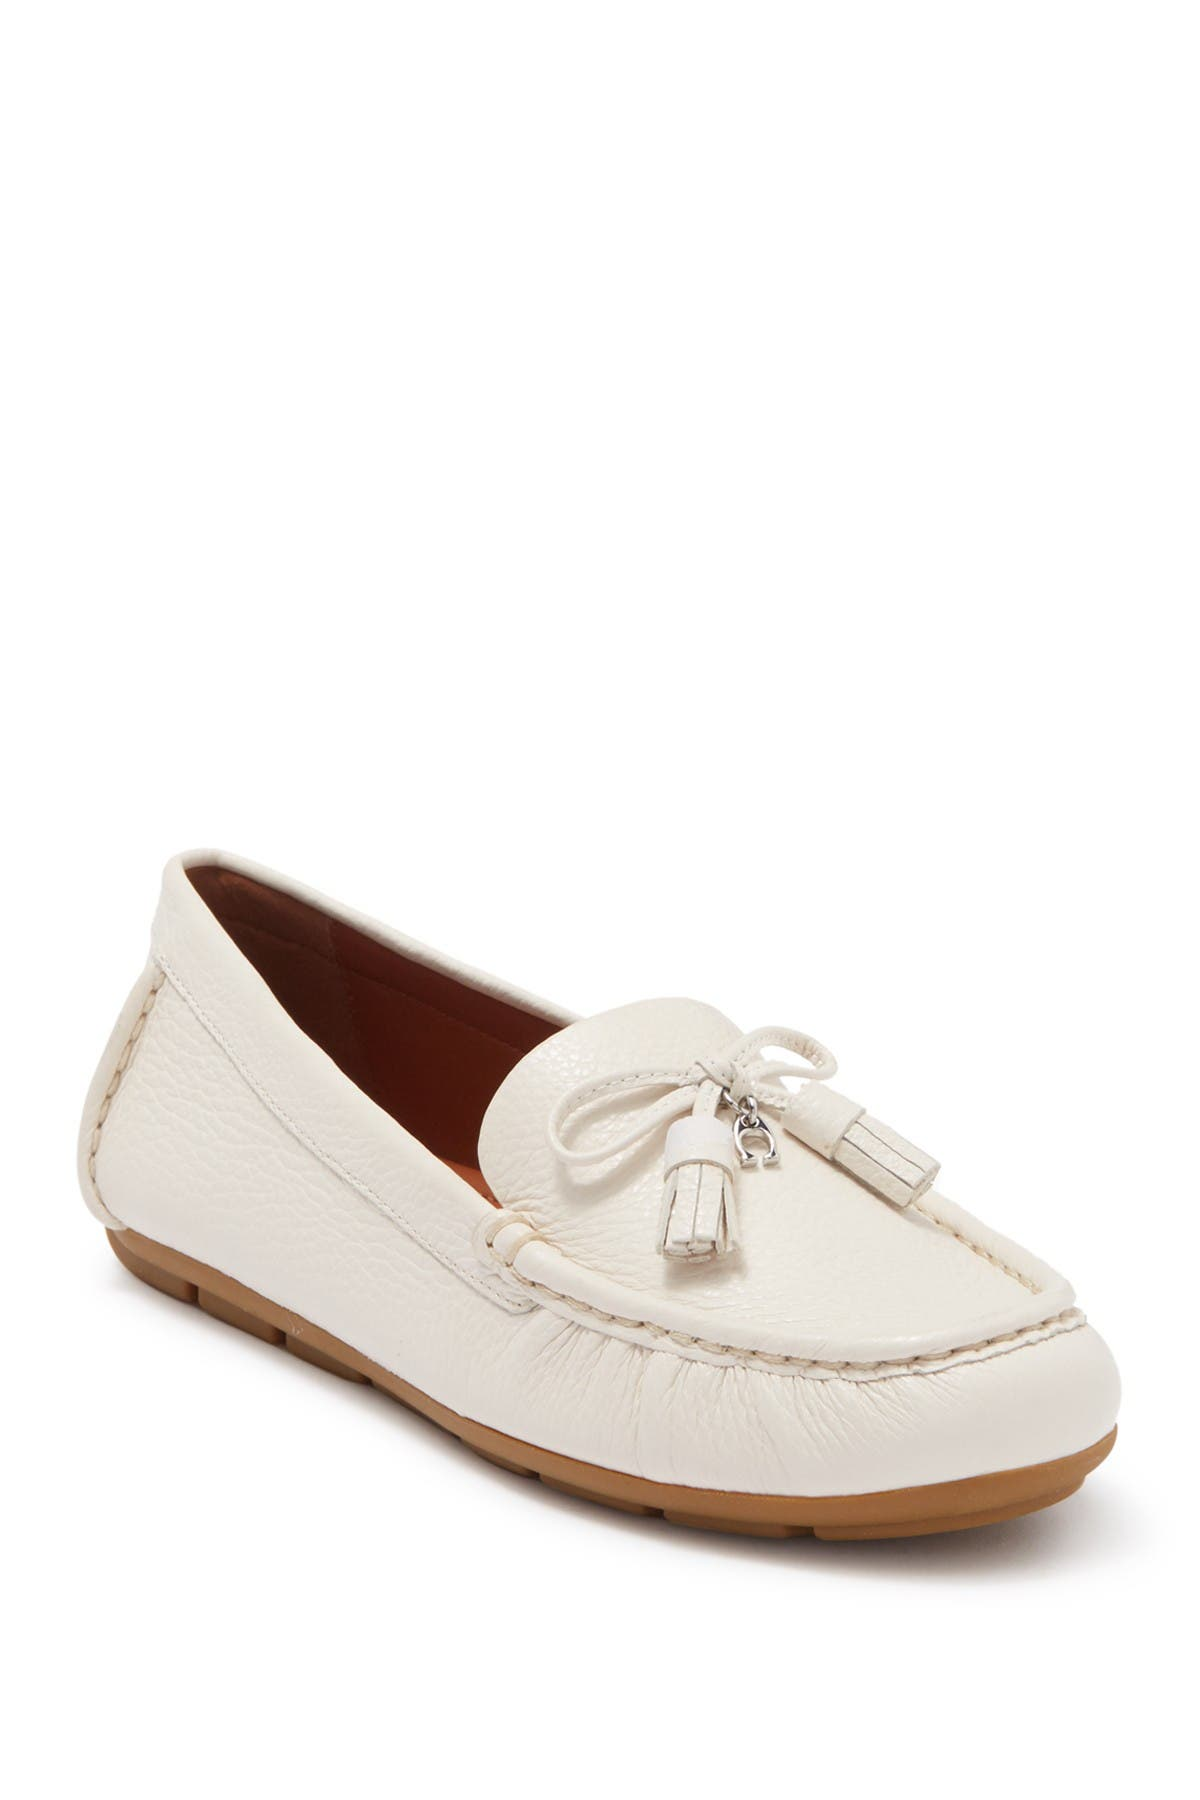 Image of Coach Minna Leather Loafer